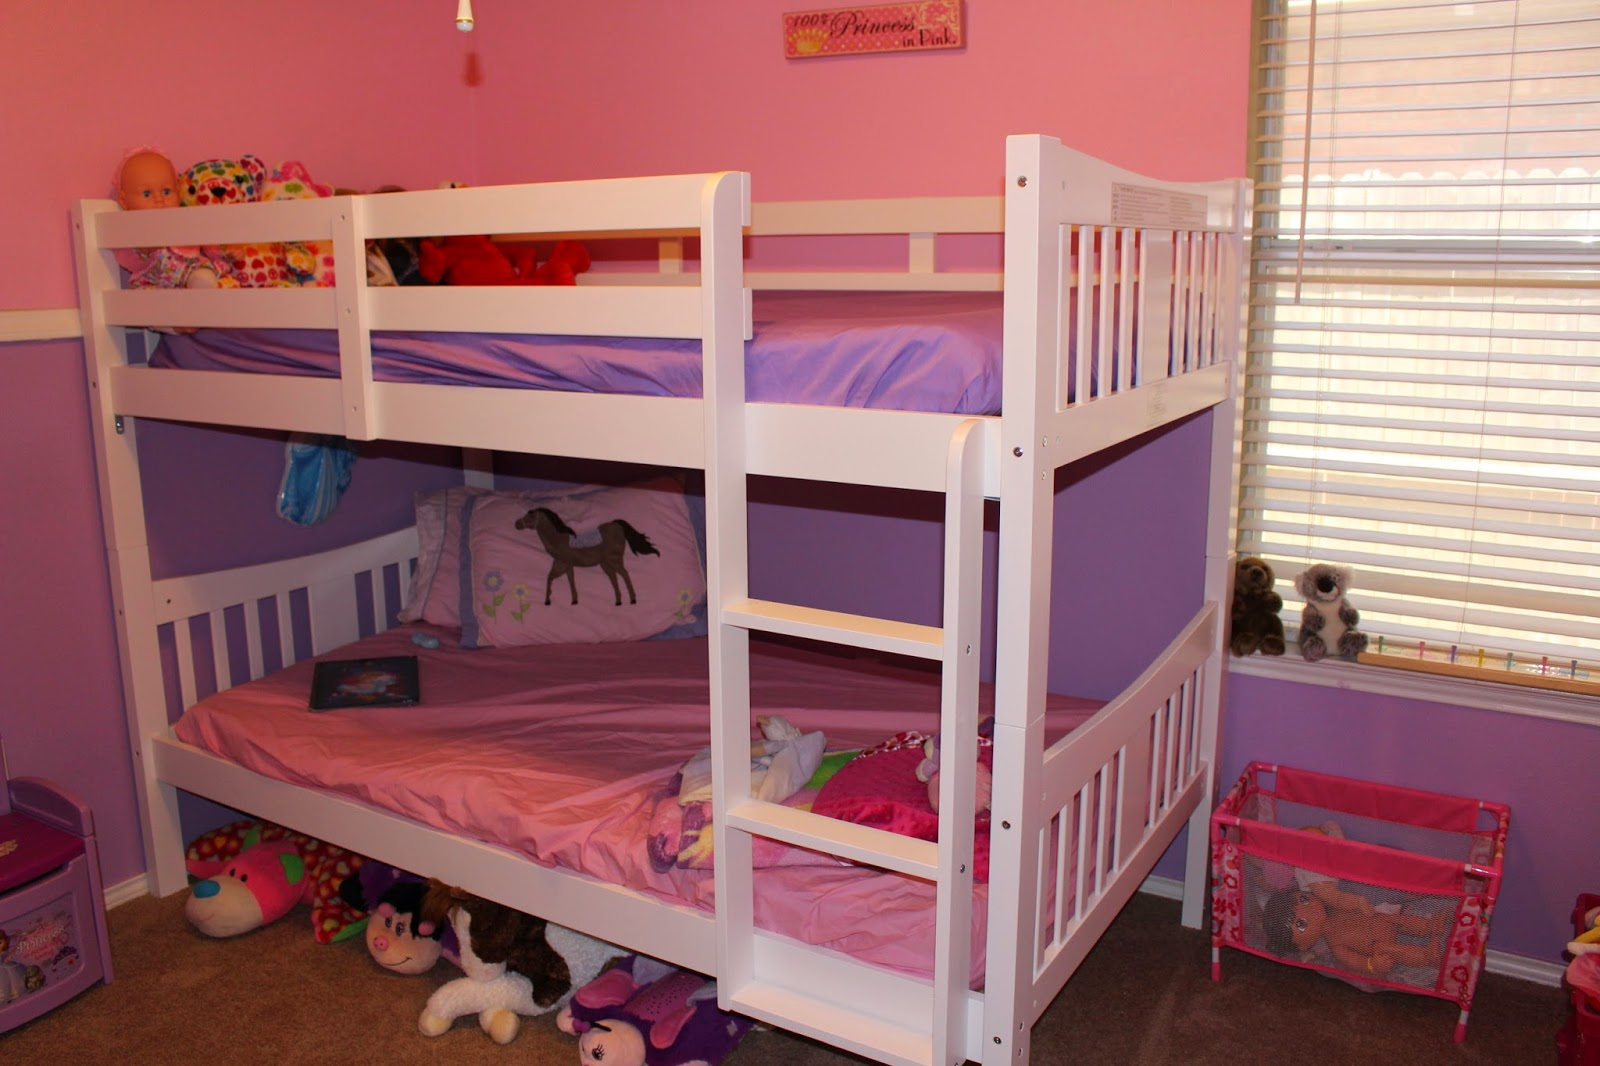 The story of three stork craft bunk bed review and giveaway for Stork craft caribou bunk bed